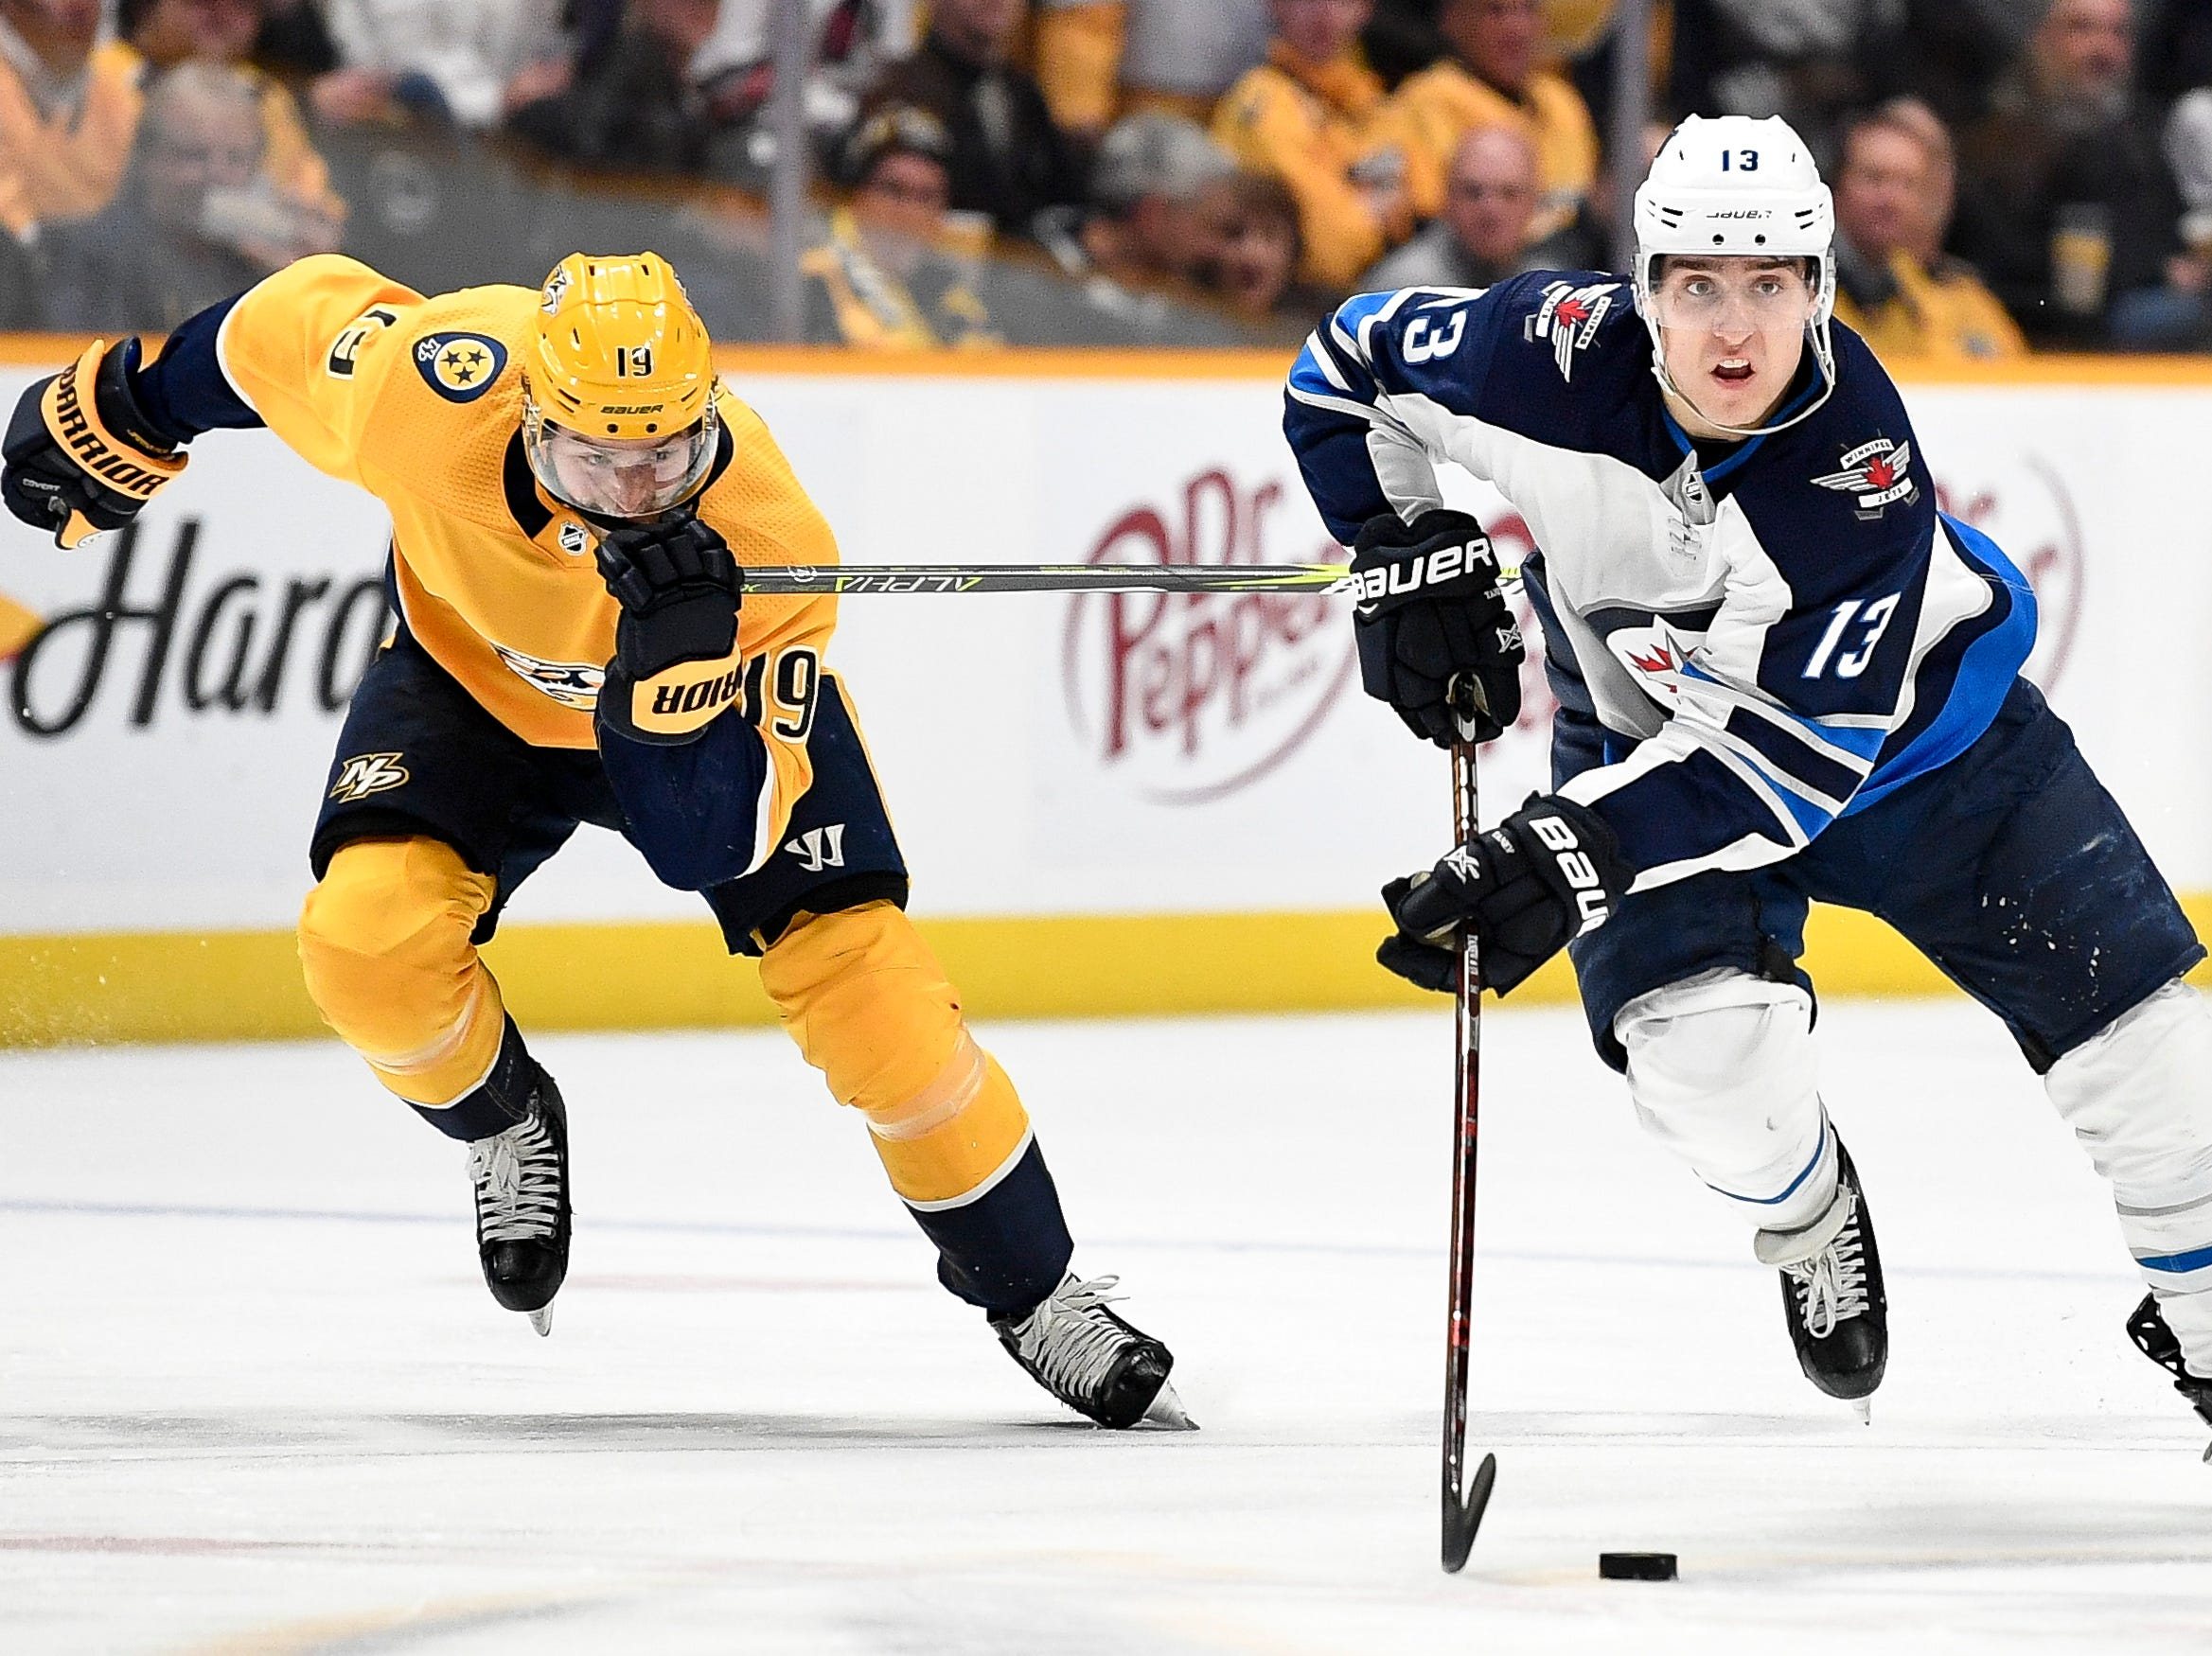 Winnipeg Jets left wing Brandon Tanev (13) skates past Nashville Predators center Calle Jarnkrok (19) during the second period at Bridgestone Arena in Nashville, Tenn., Thursday, Jan. 17, 2019.